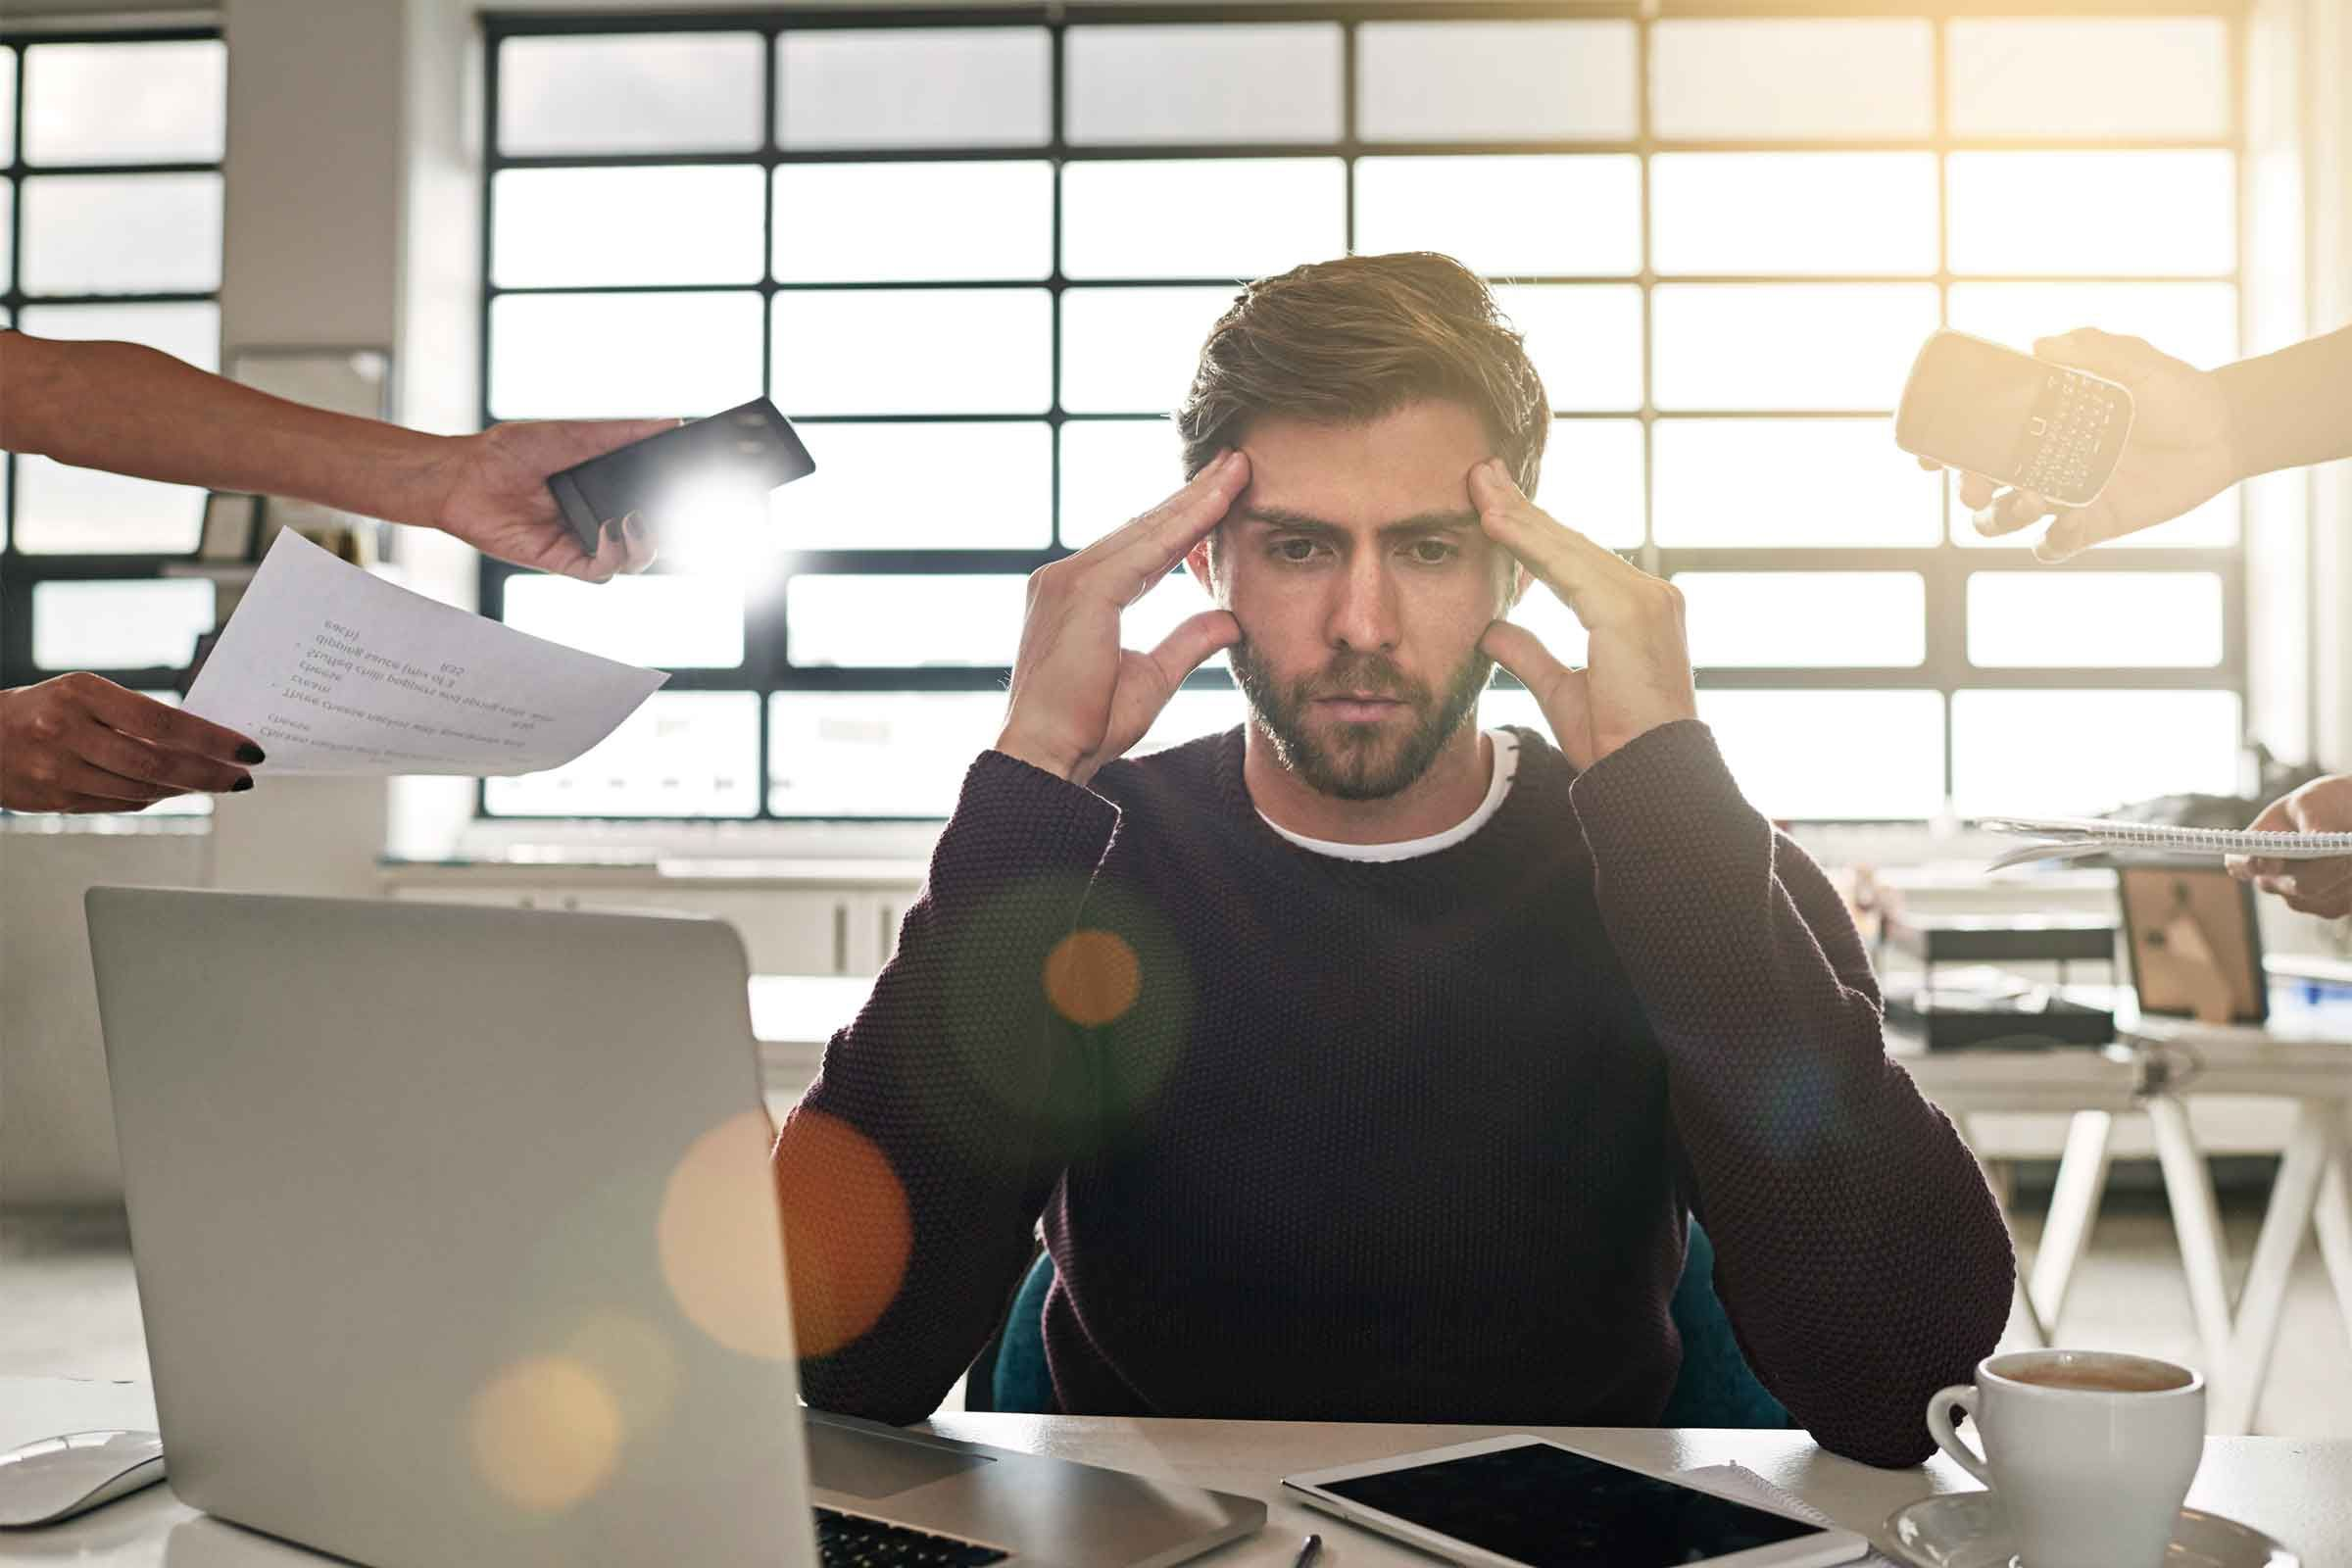 14 Secret Signs You Might Be Getting Fired Reason for